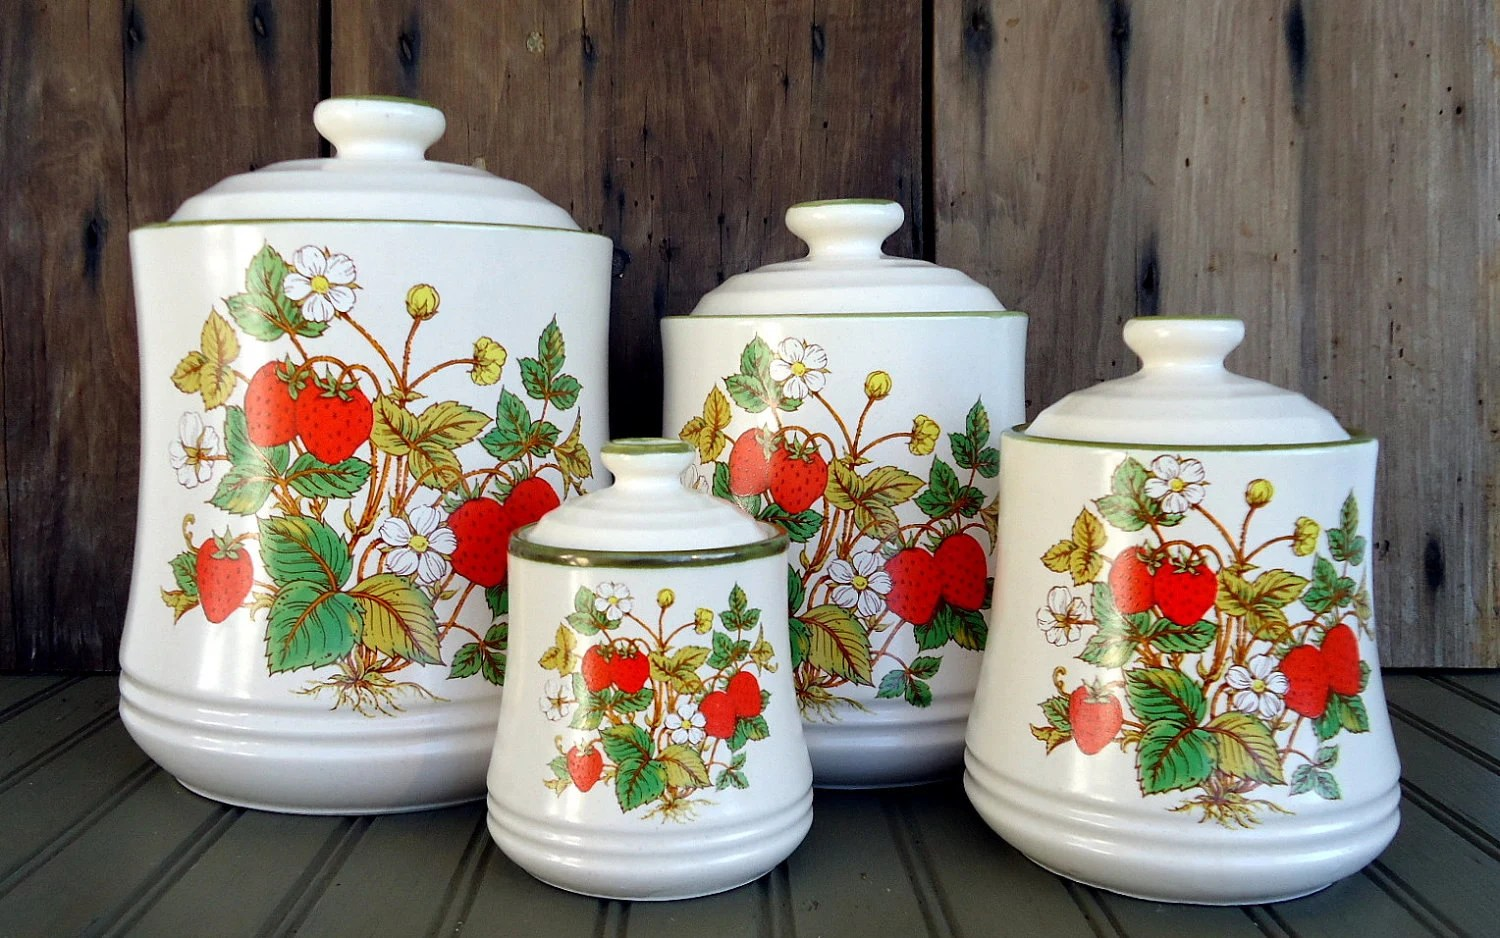 kitchen canisters ceramic rug for under table vintage strawberry canister set japan retro